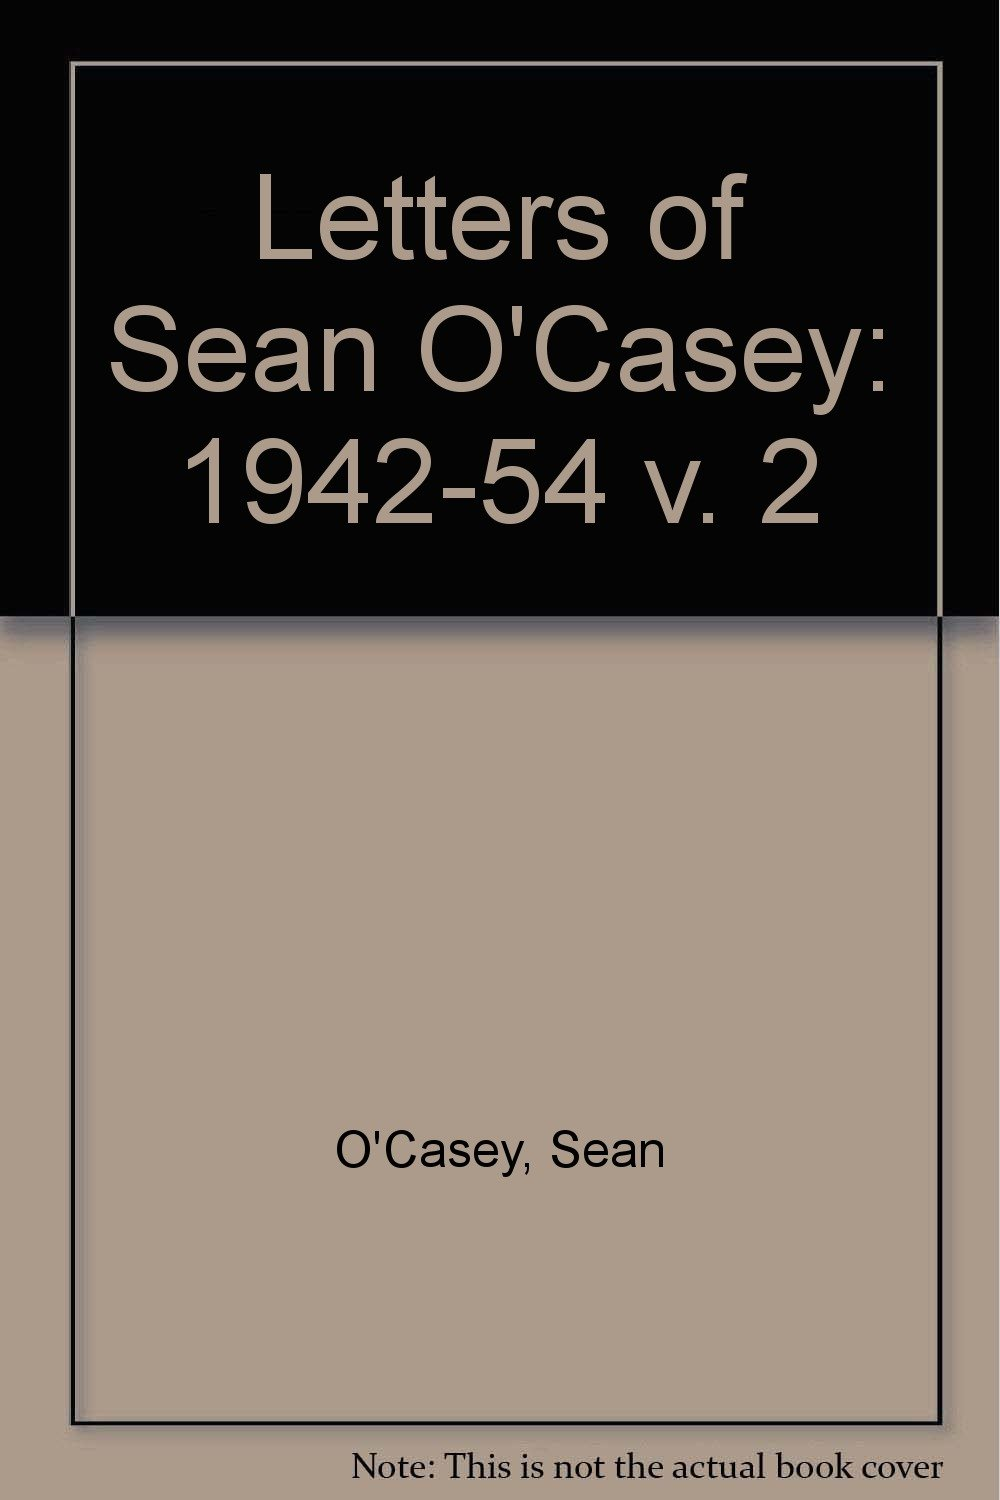 The Letters of Sean O'Casey, Vol. 2: 1942-1954